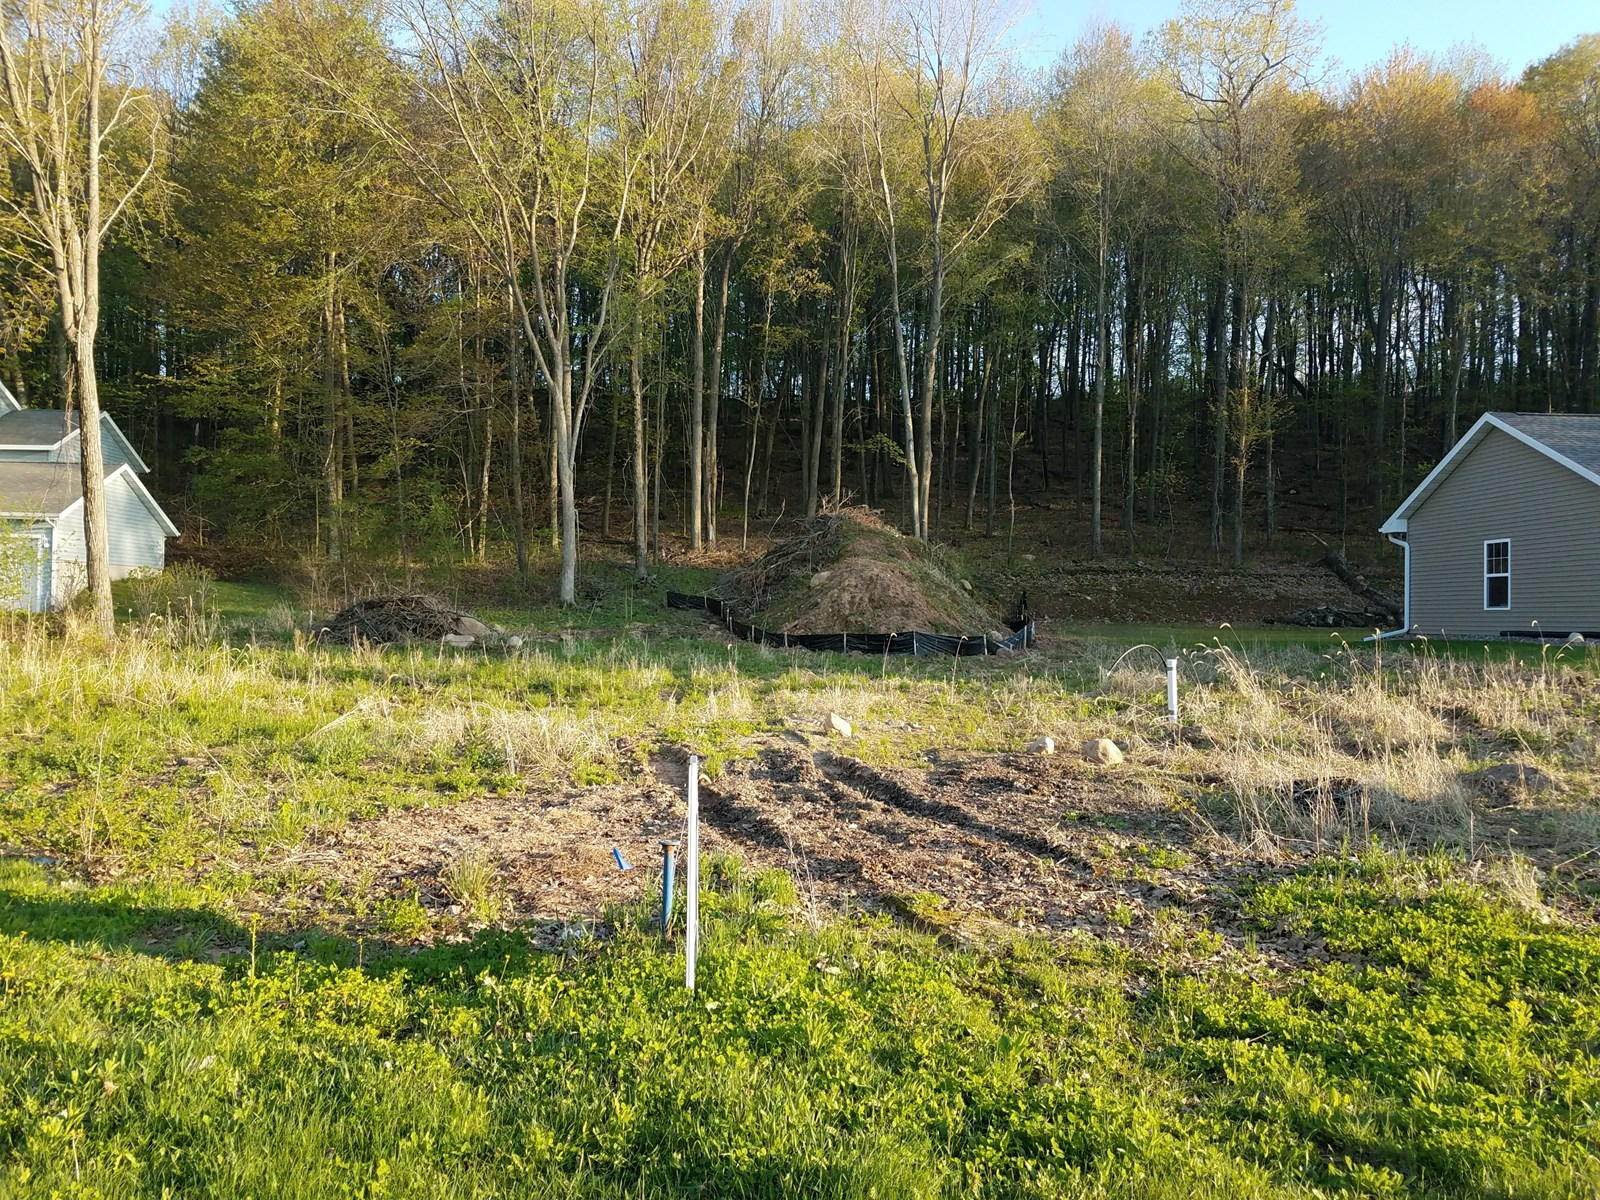 Vacant Land for Sale in Waupaca WI